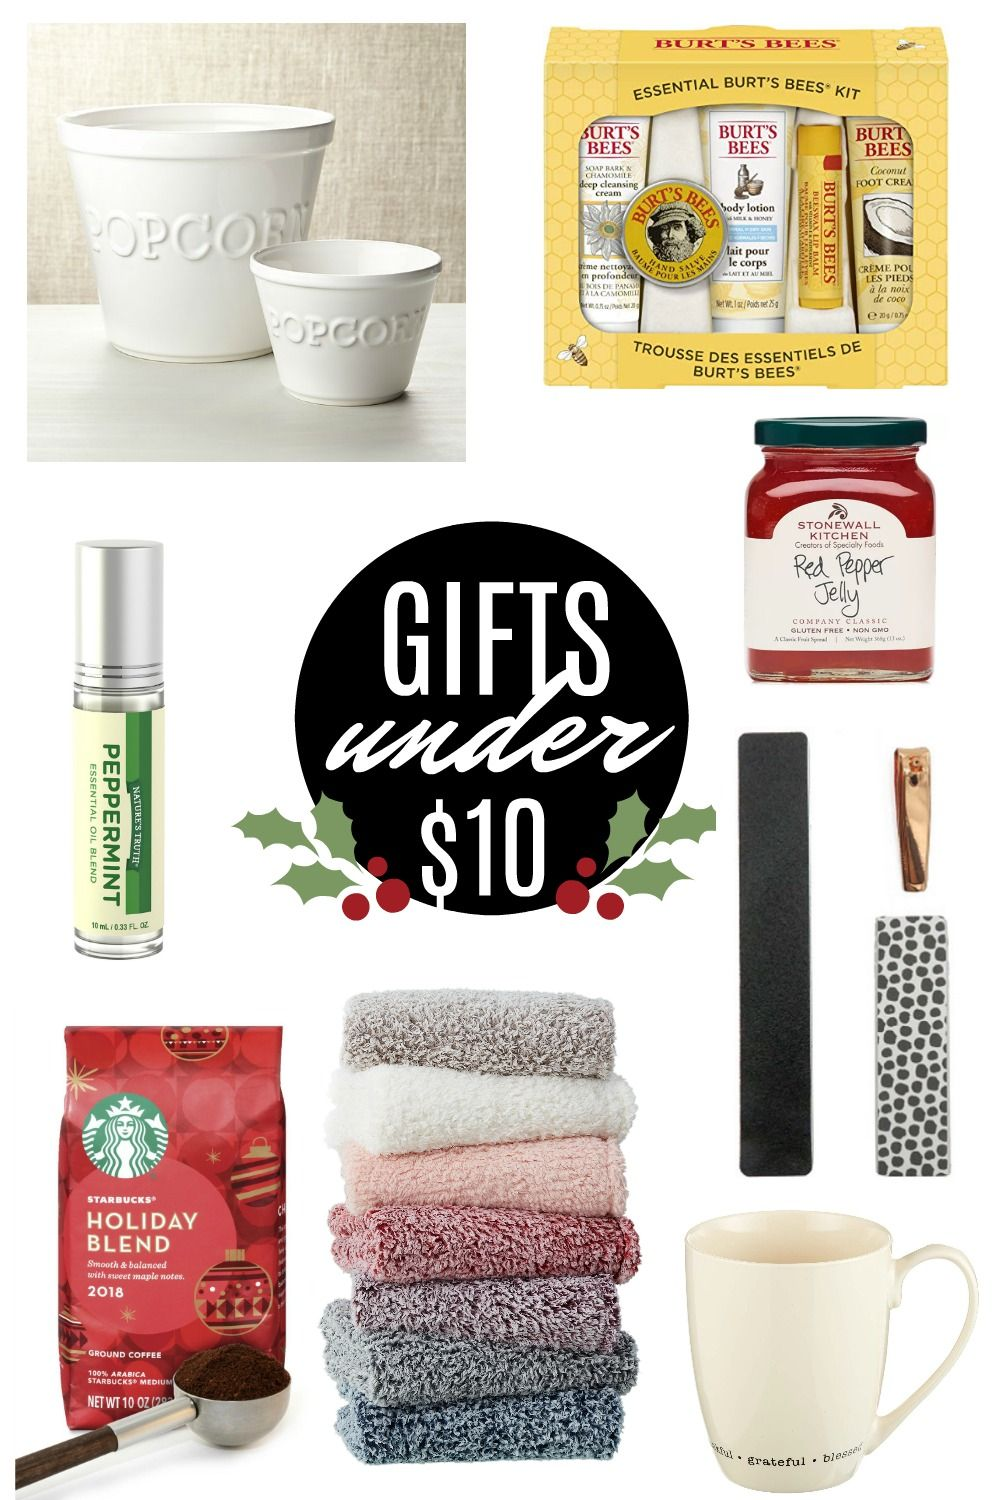 Gifts under $10 | Gifts under 10, Holiday gifts, Holiday ...